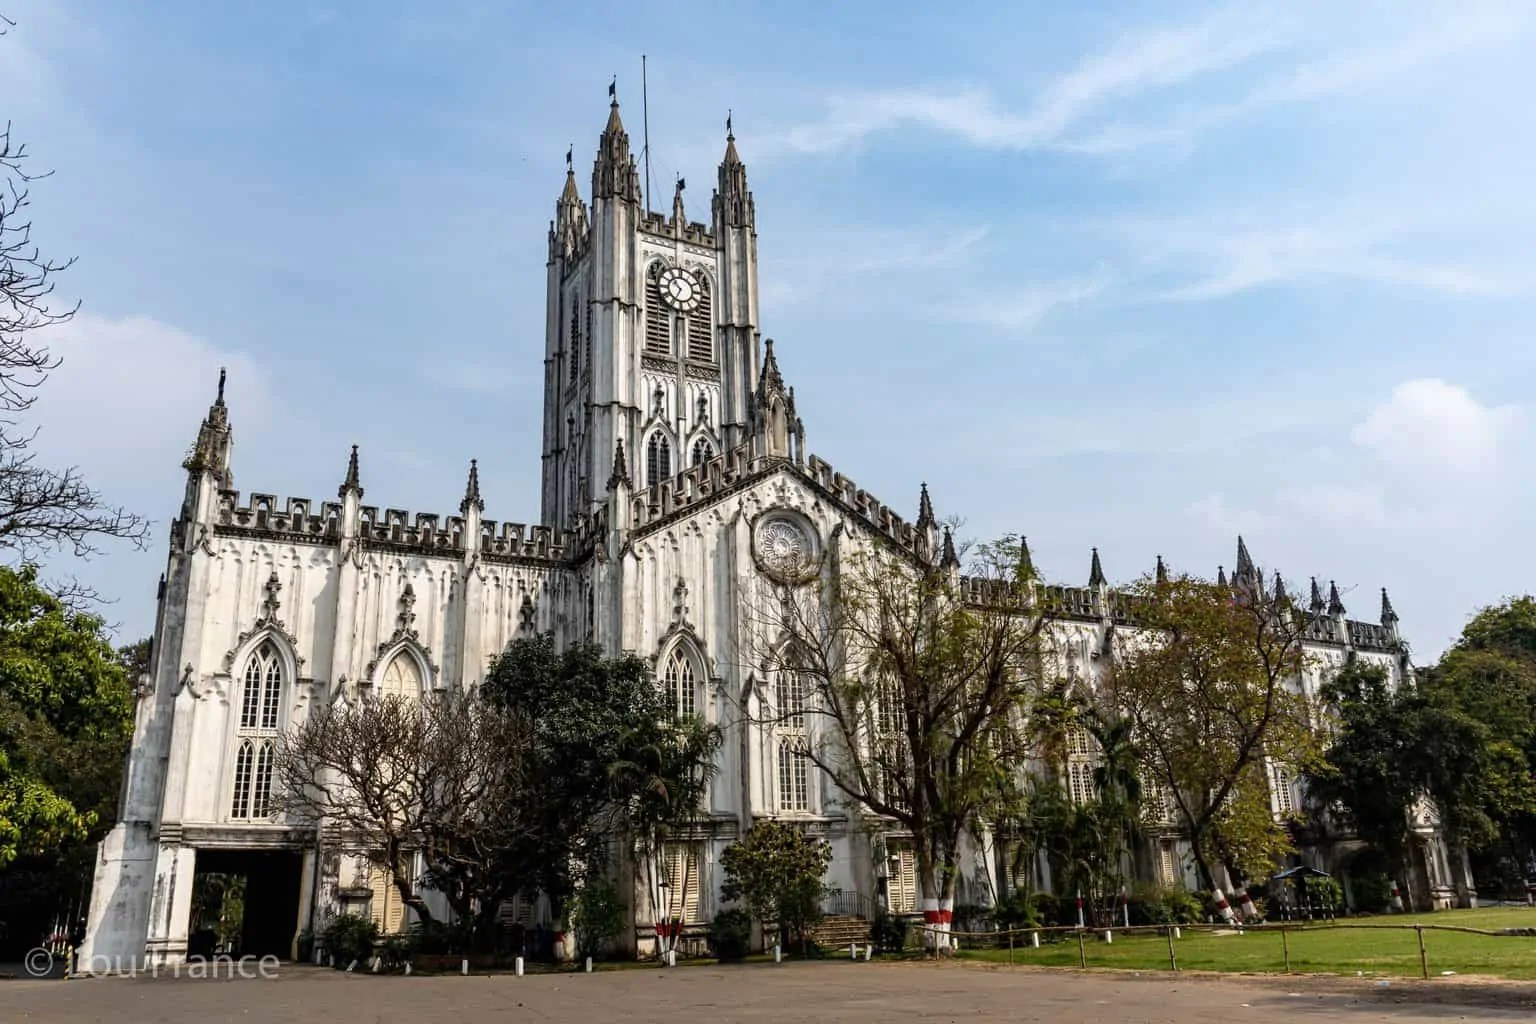 The best places for photography in Kolkata